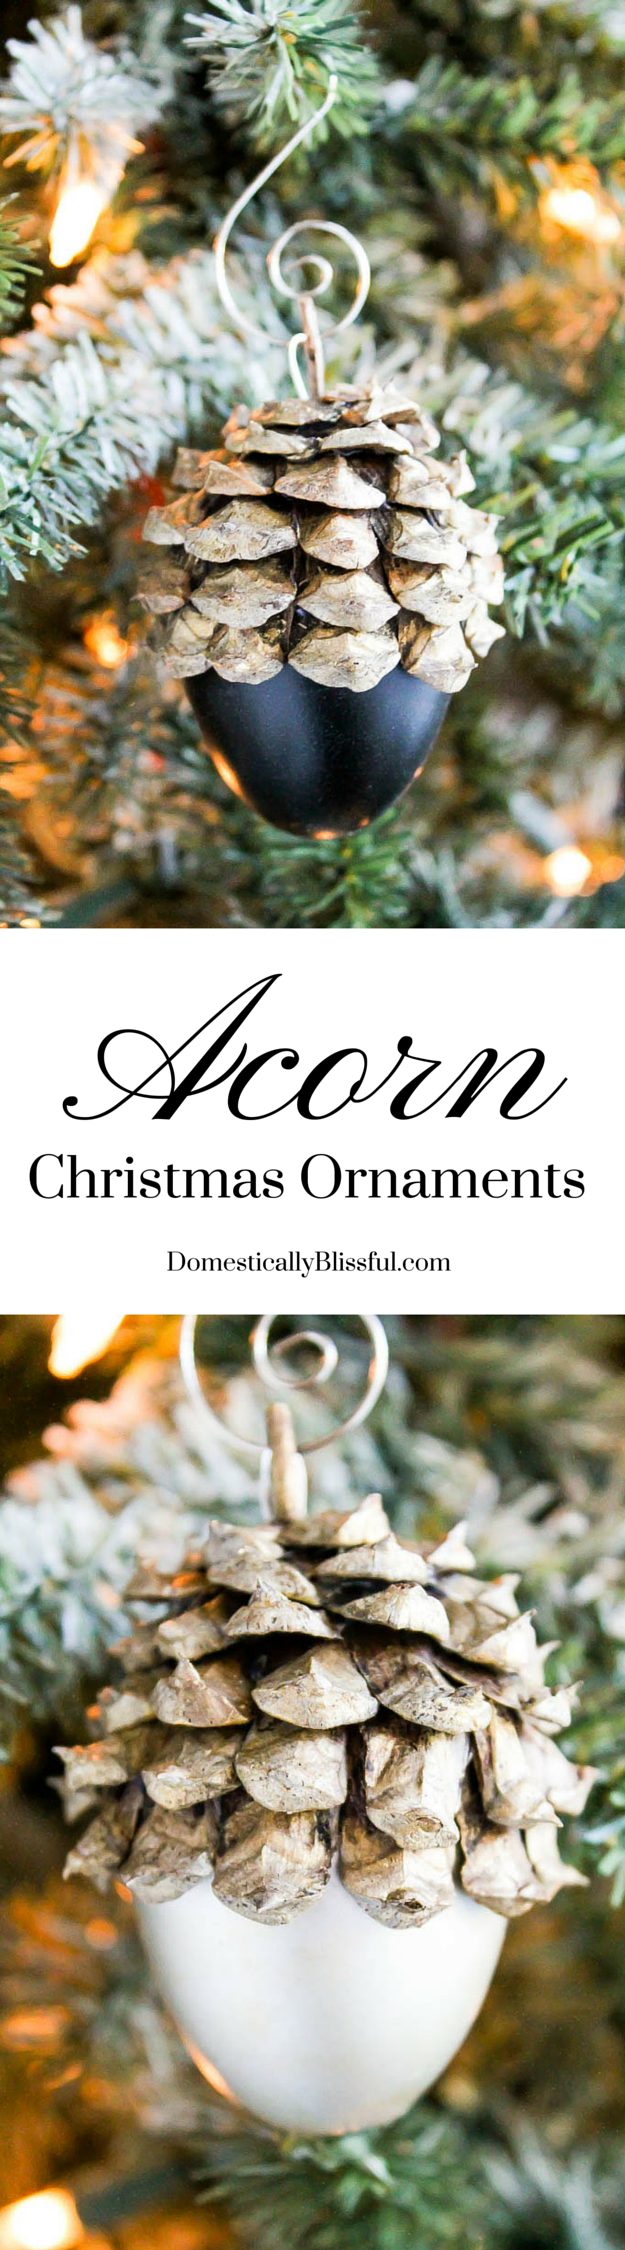 These Faux Acorn Christmas Ornaments are created from plastic Easter eggs & can be personalized to your taste for an adorable addition to your Christmas tree!